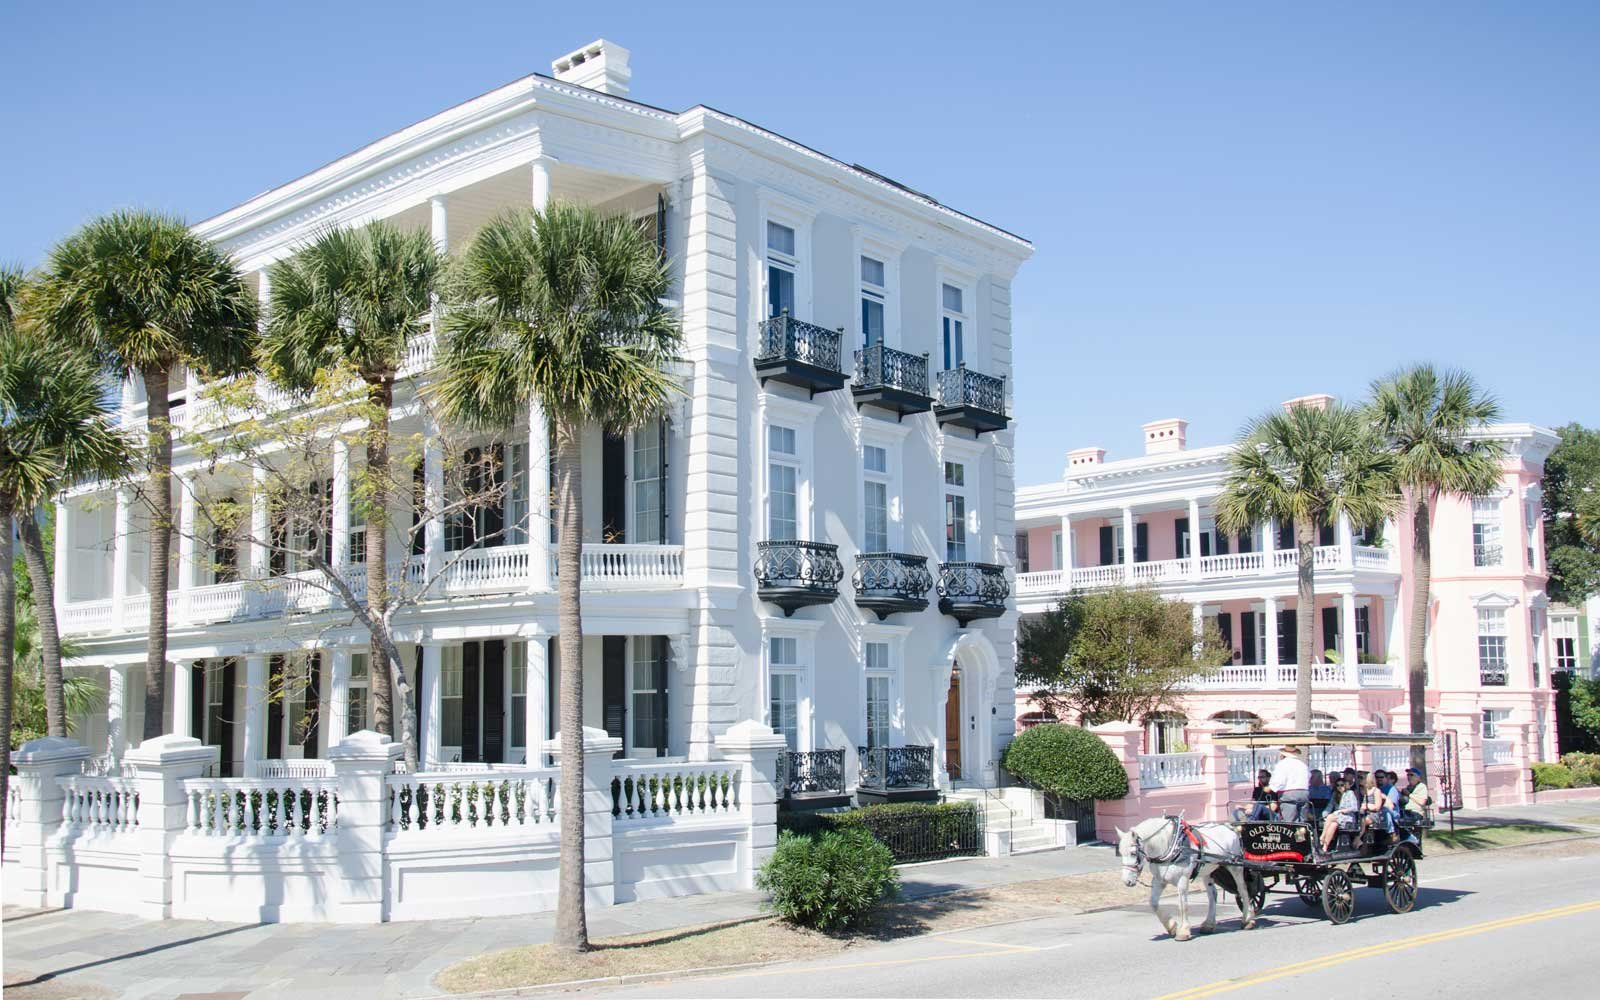 No. 2 Charleston, South Carolina